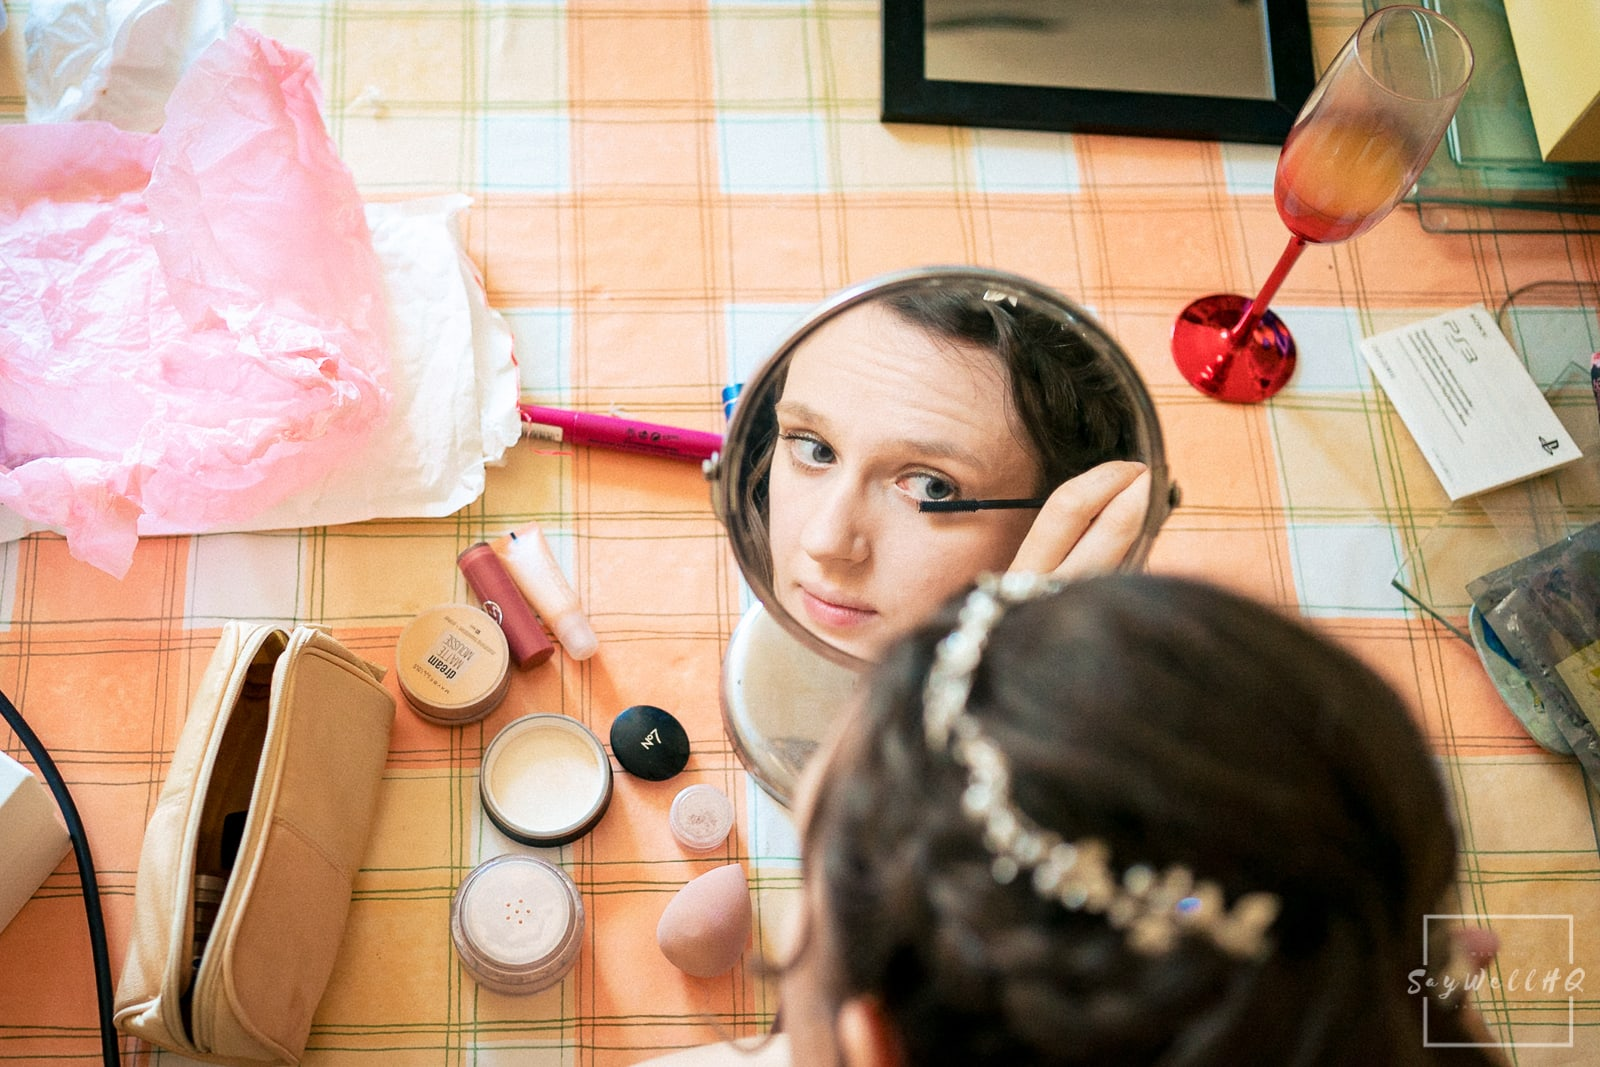 melbourne derby wedding photographer - Bride and Bridesmaids getting ready on the morning of the wedding